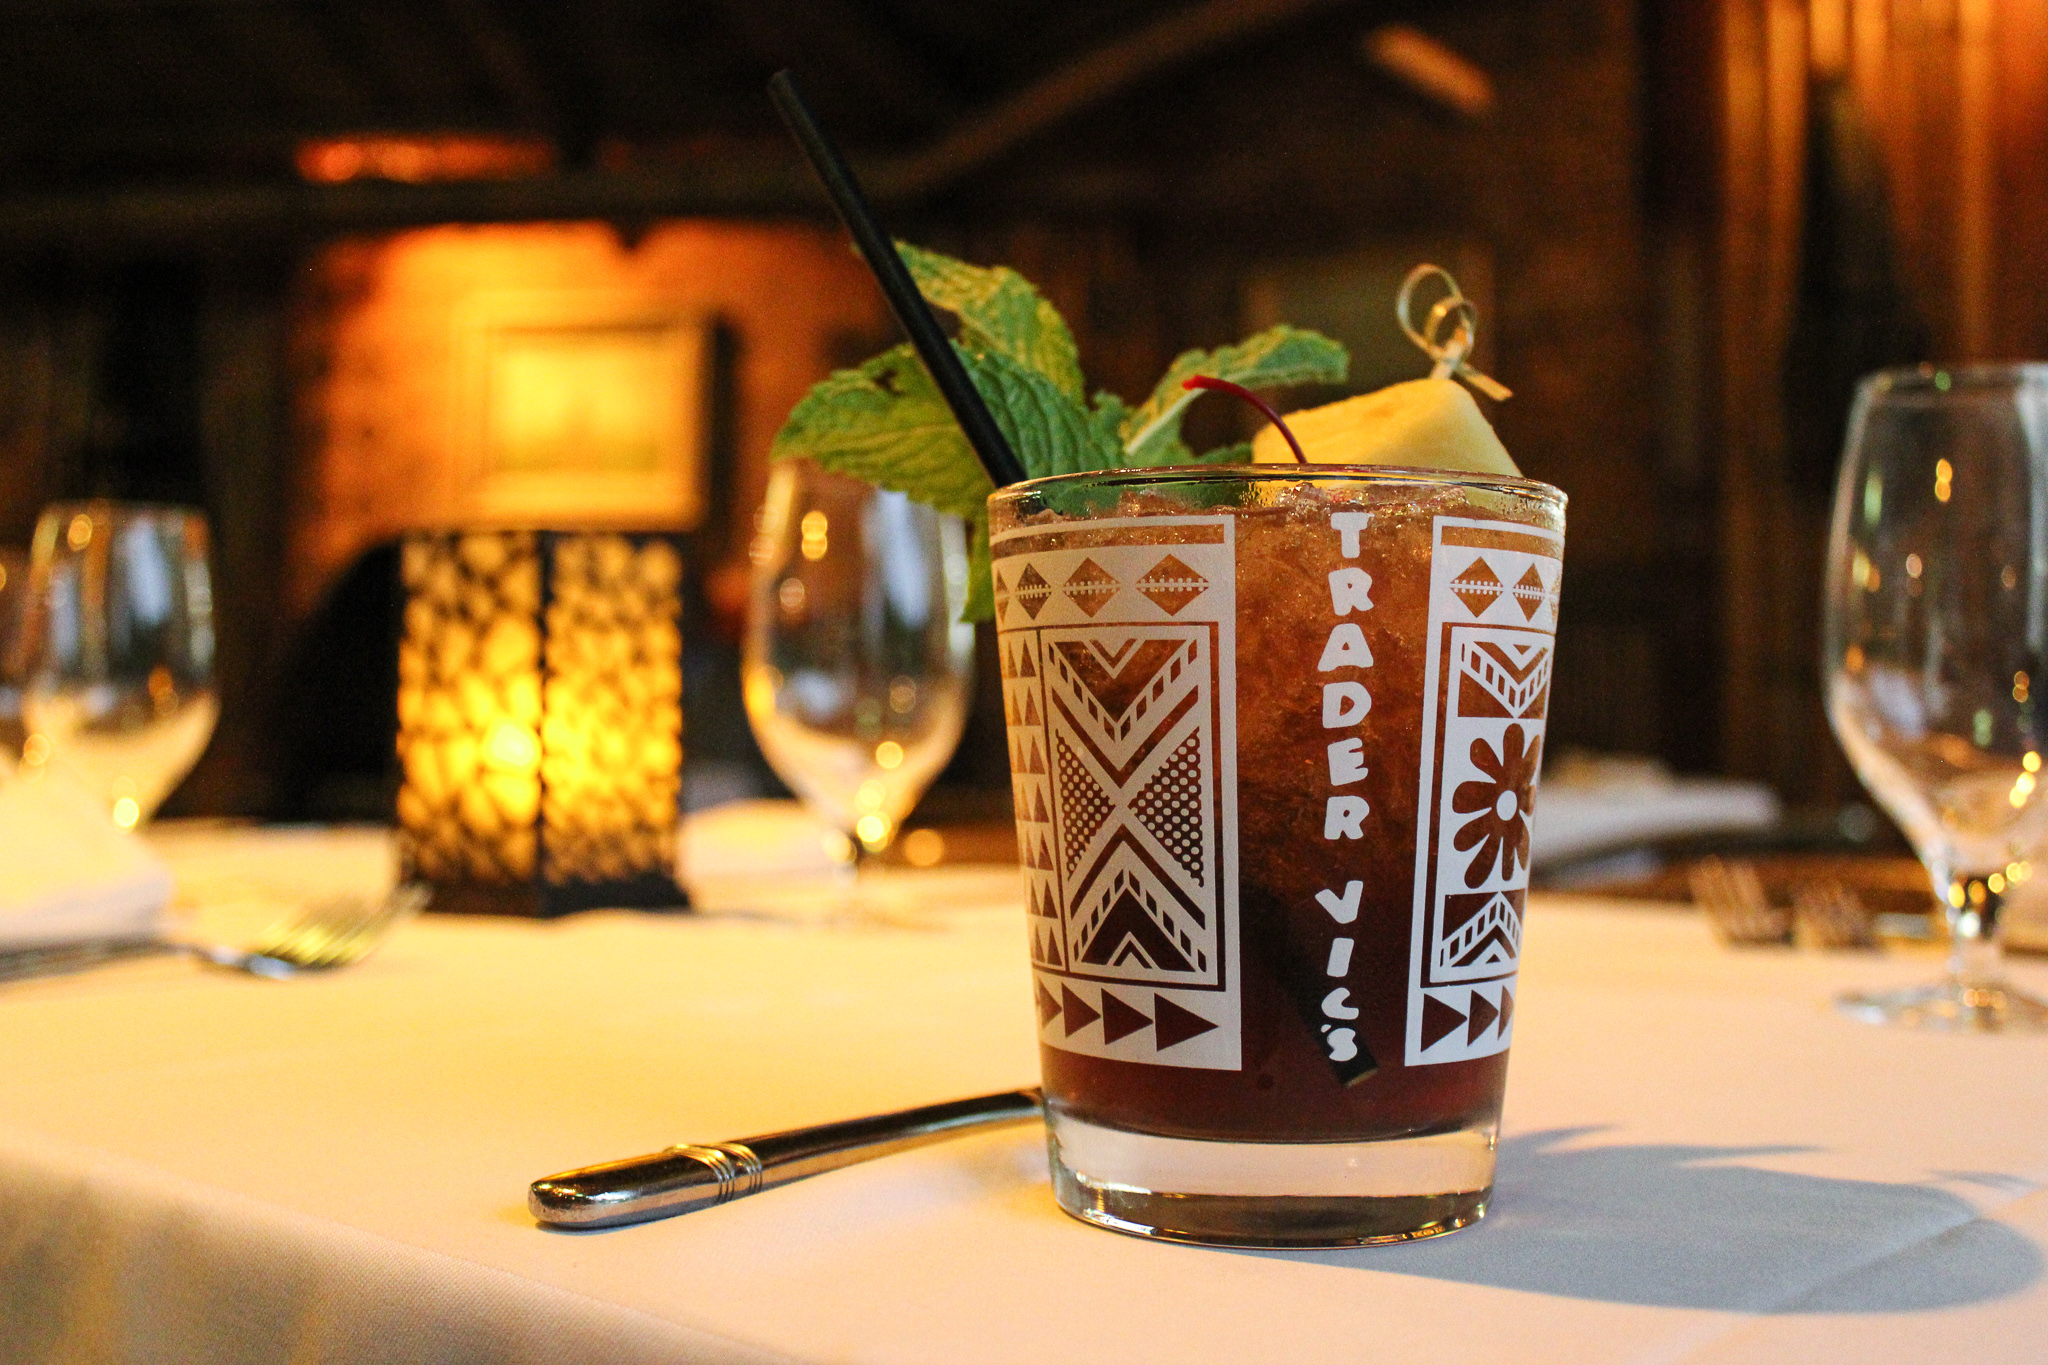 The famous Mai Tai at Trader Vic's (c) Anna Lanfreschi